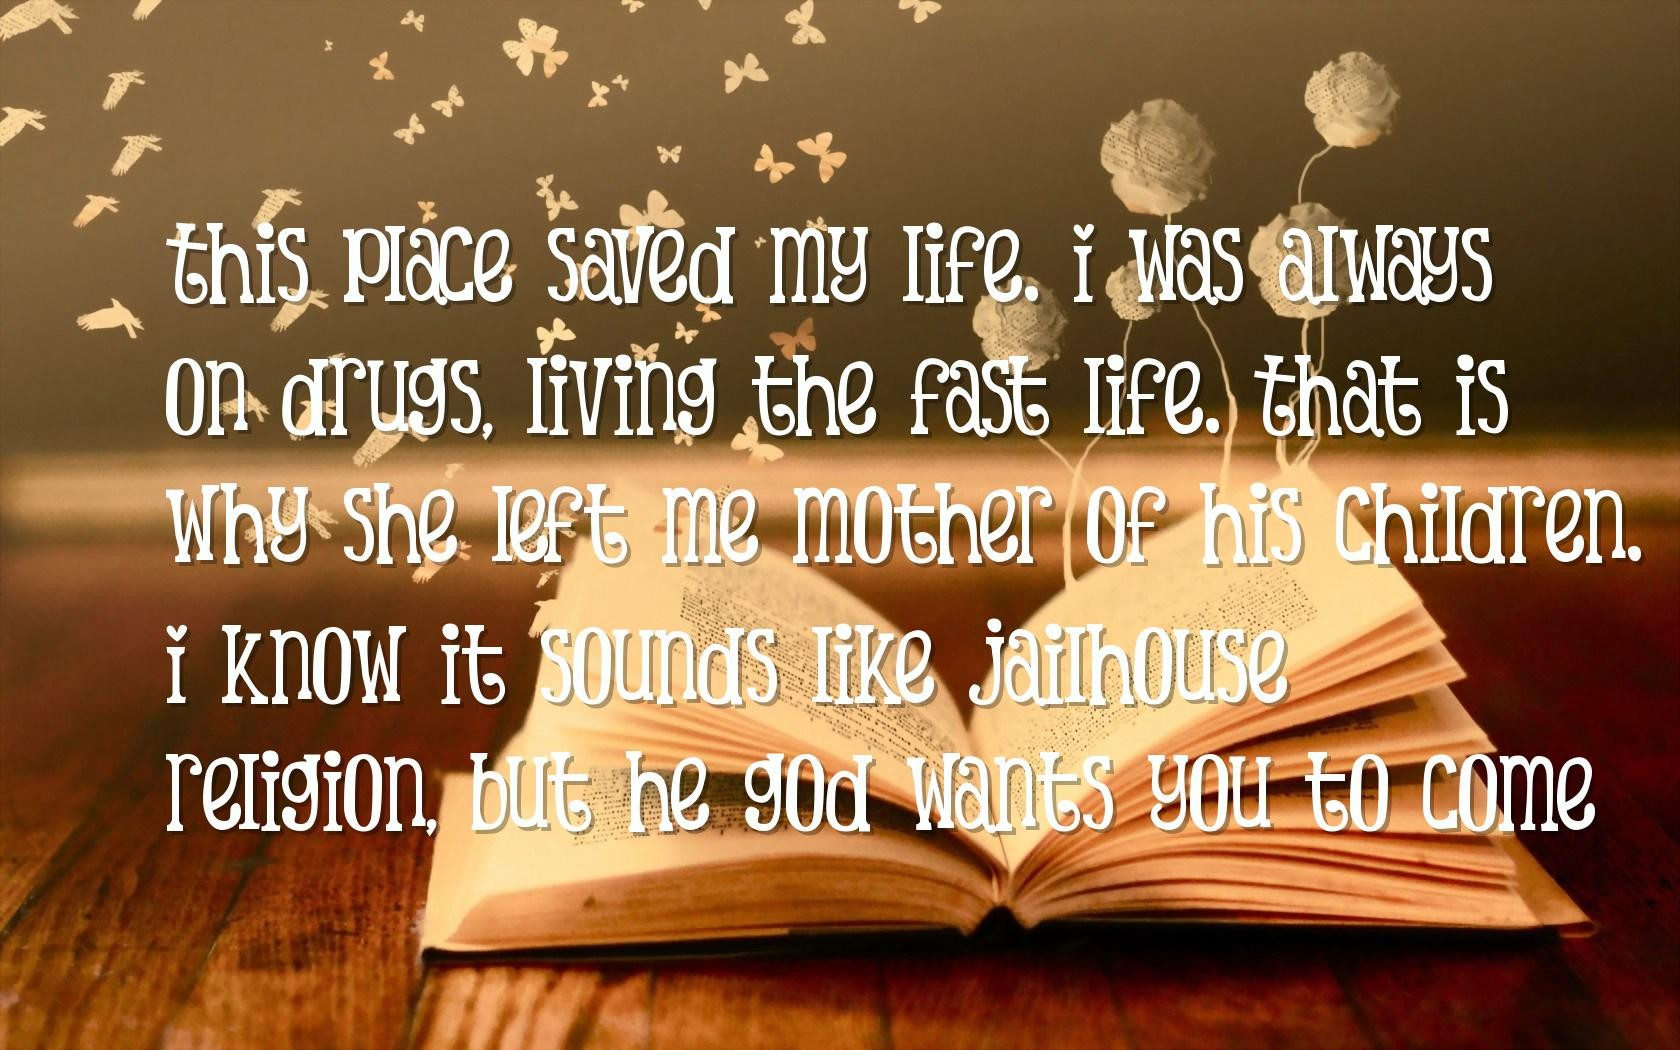 Life Messages And Quotes: You Saved My Life Quotes. QuotesGram